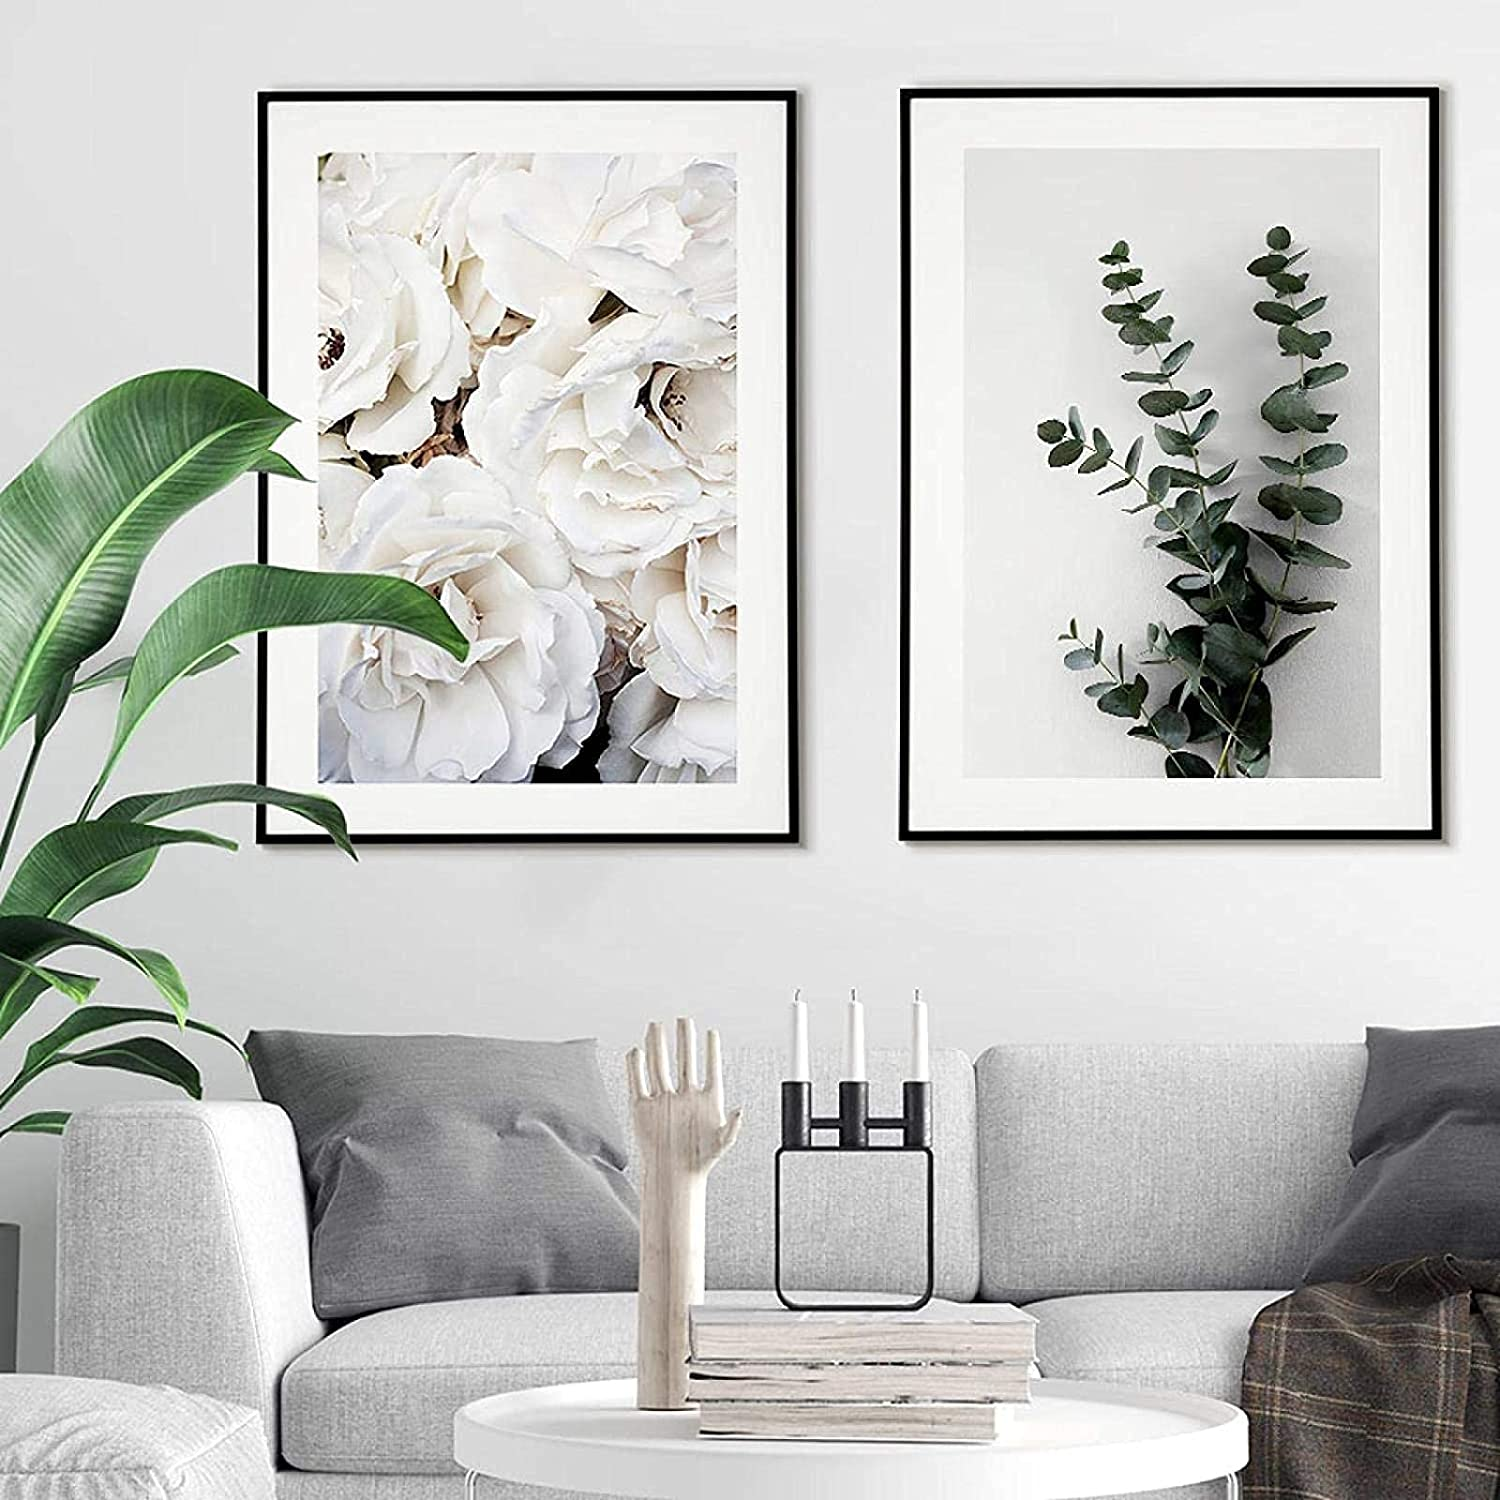 Ornaments Luxury Max 71% OFF goods 2 Piece 15.7x23.6in 40x60cm Frame Modern No Abstract